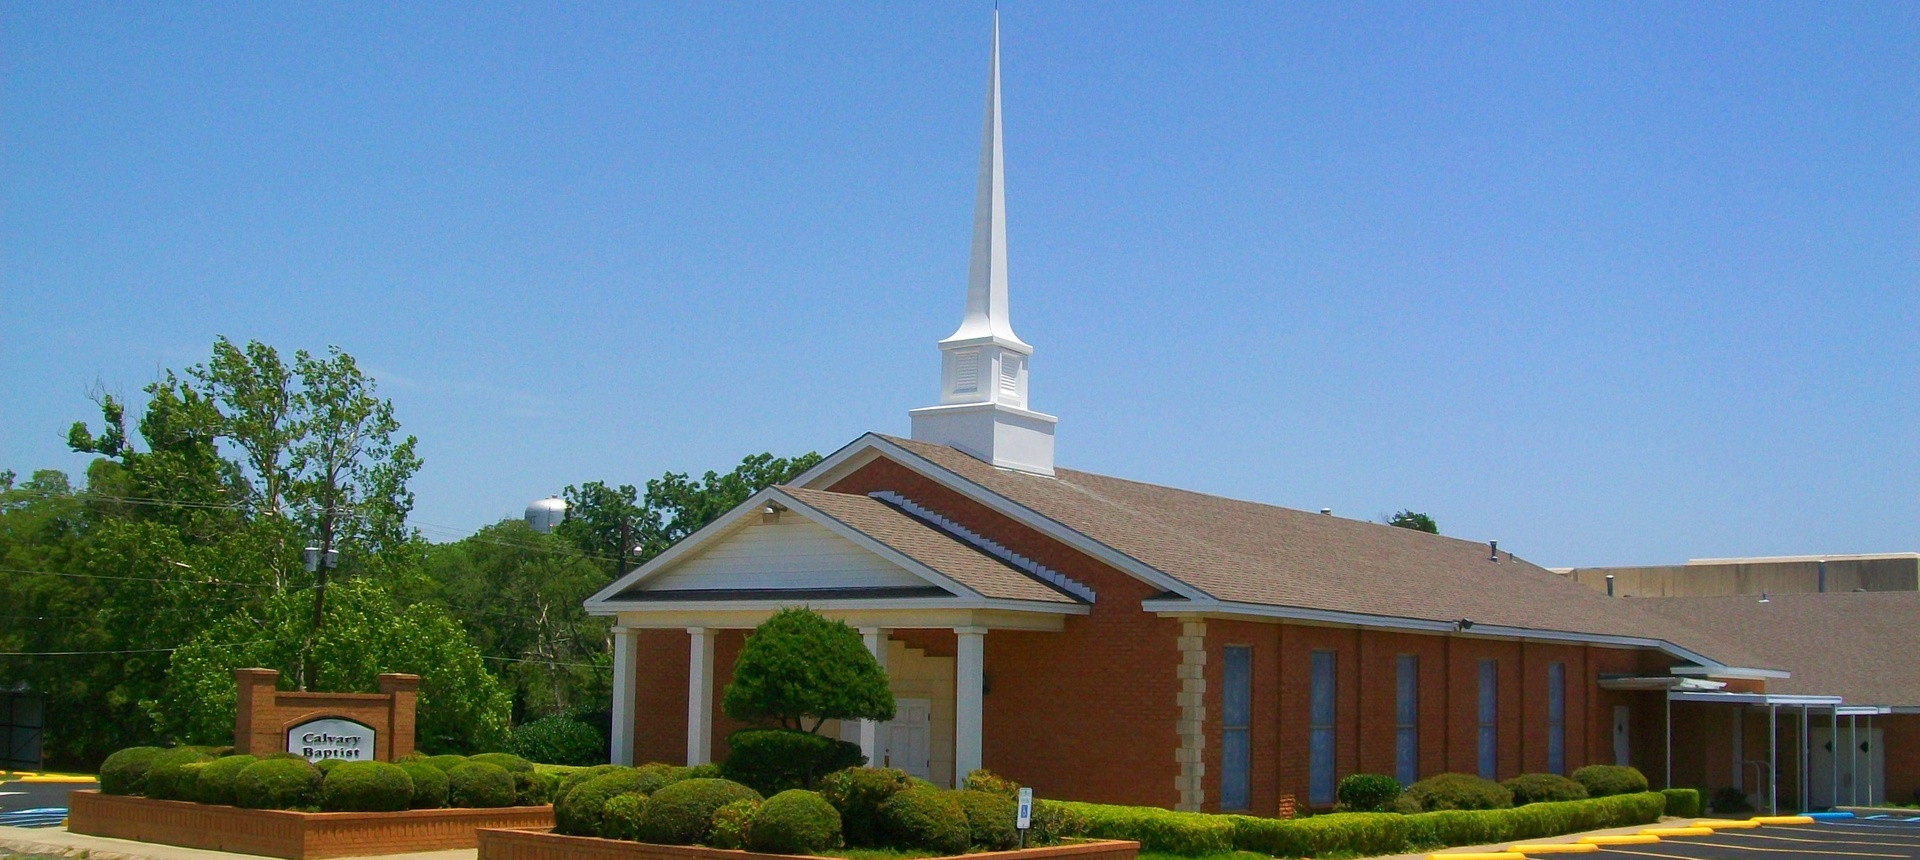 Calvary Baptist Church, Physical: 125 N. Jefferson St., Mailing: P.O. Box 484, Pilot Point, Texas, 76258, USA